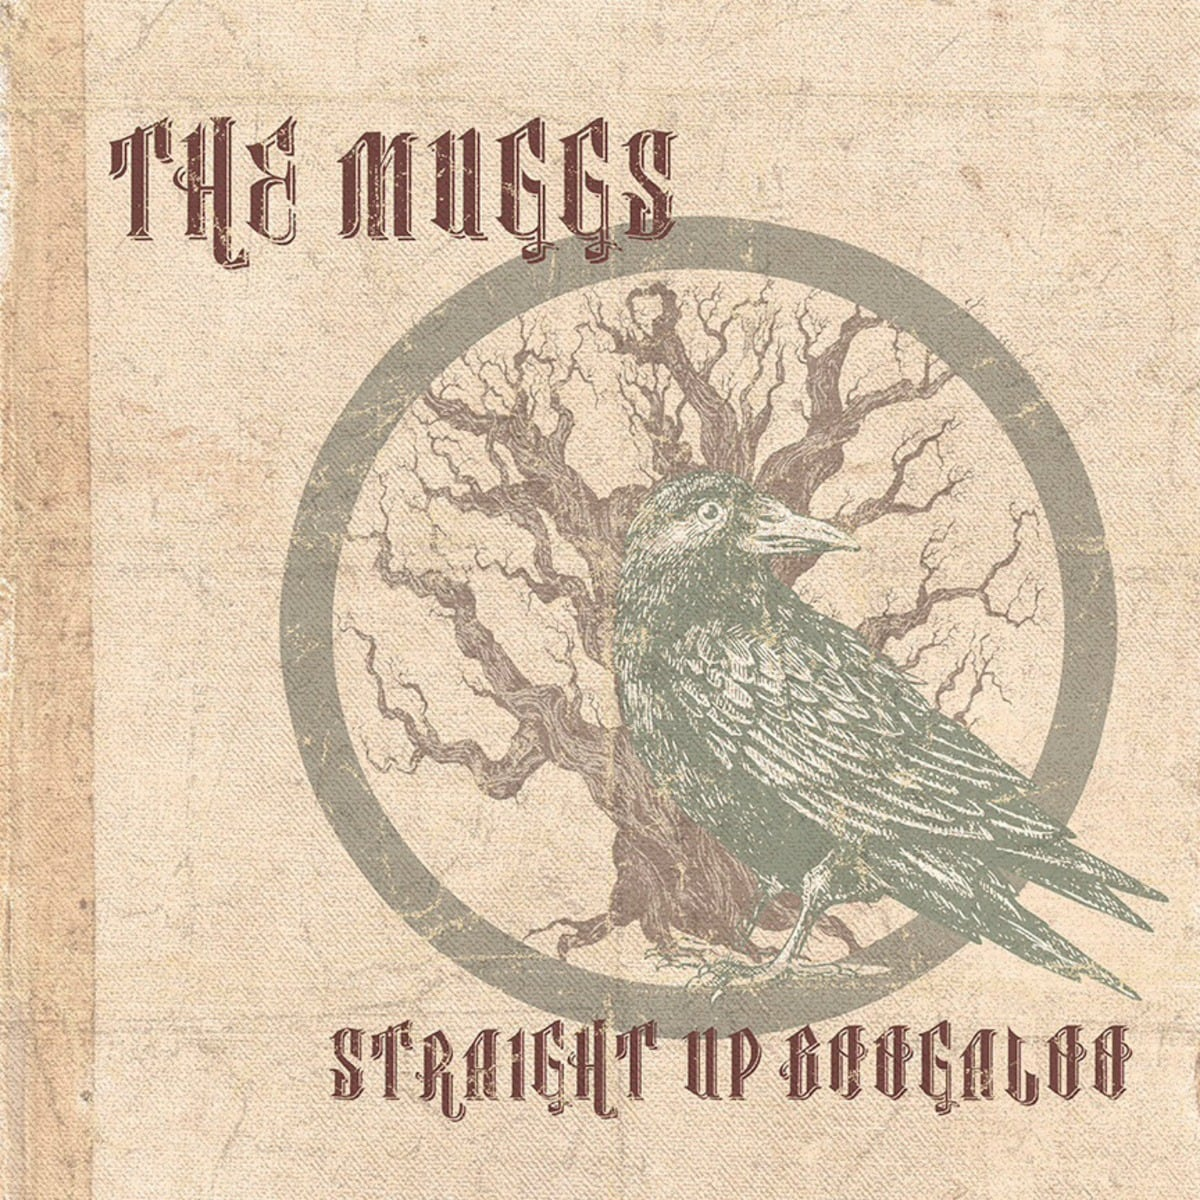 THE MUGGS (USA) – Straight Up Boogaloo, 2015